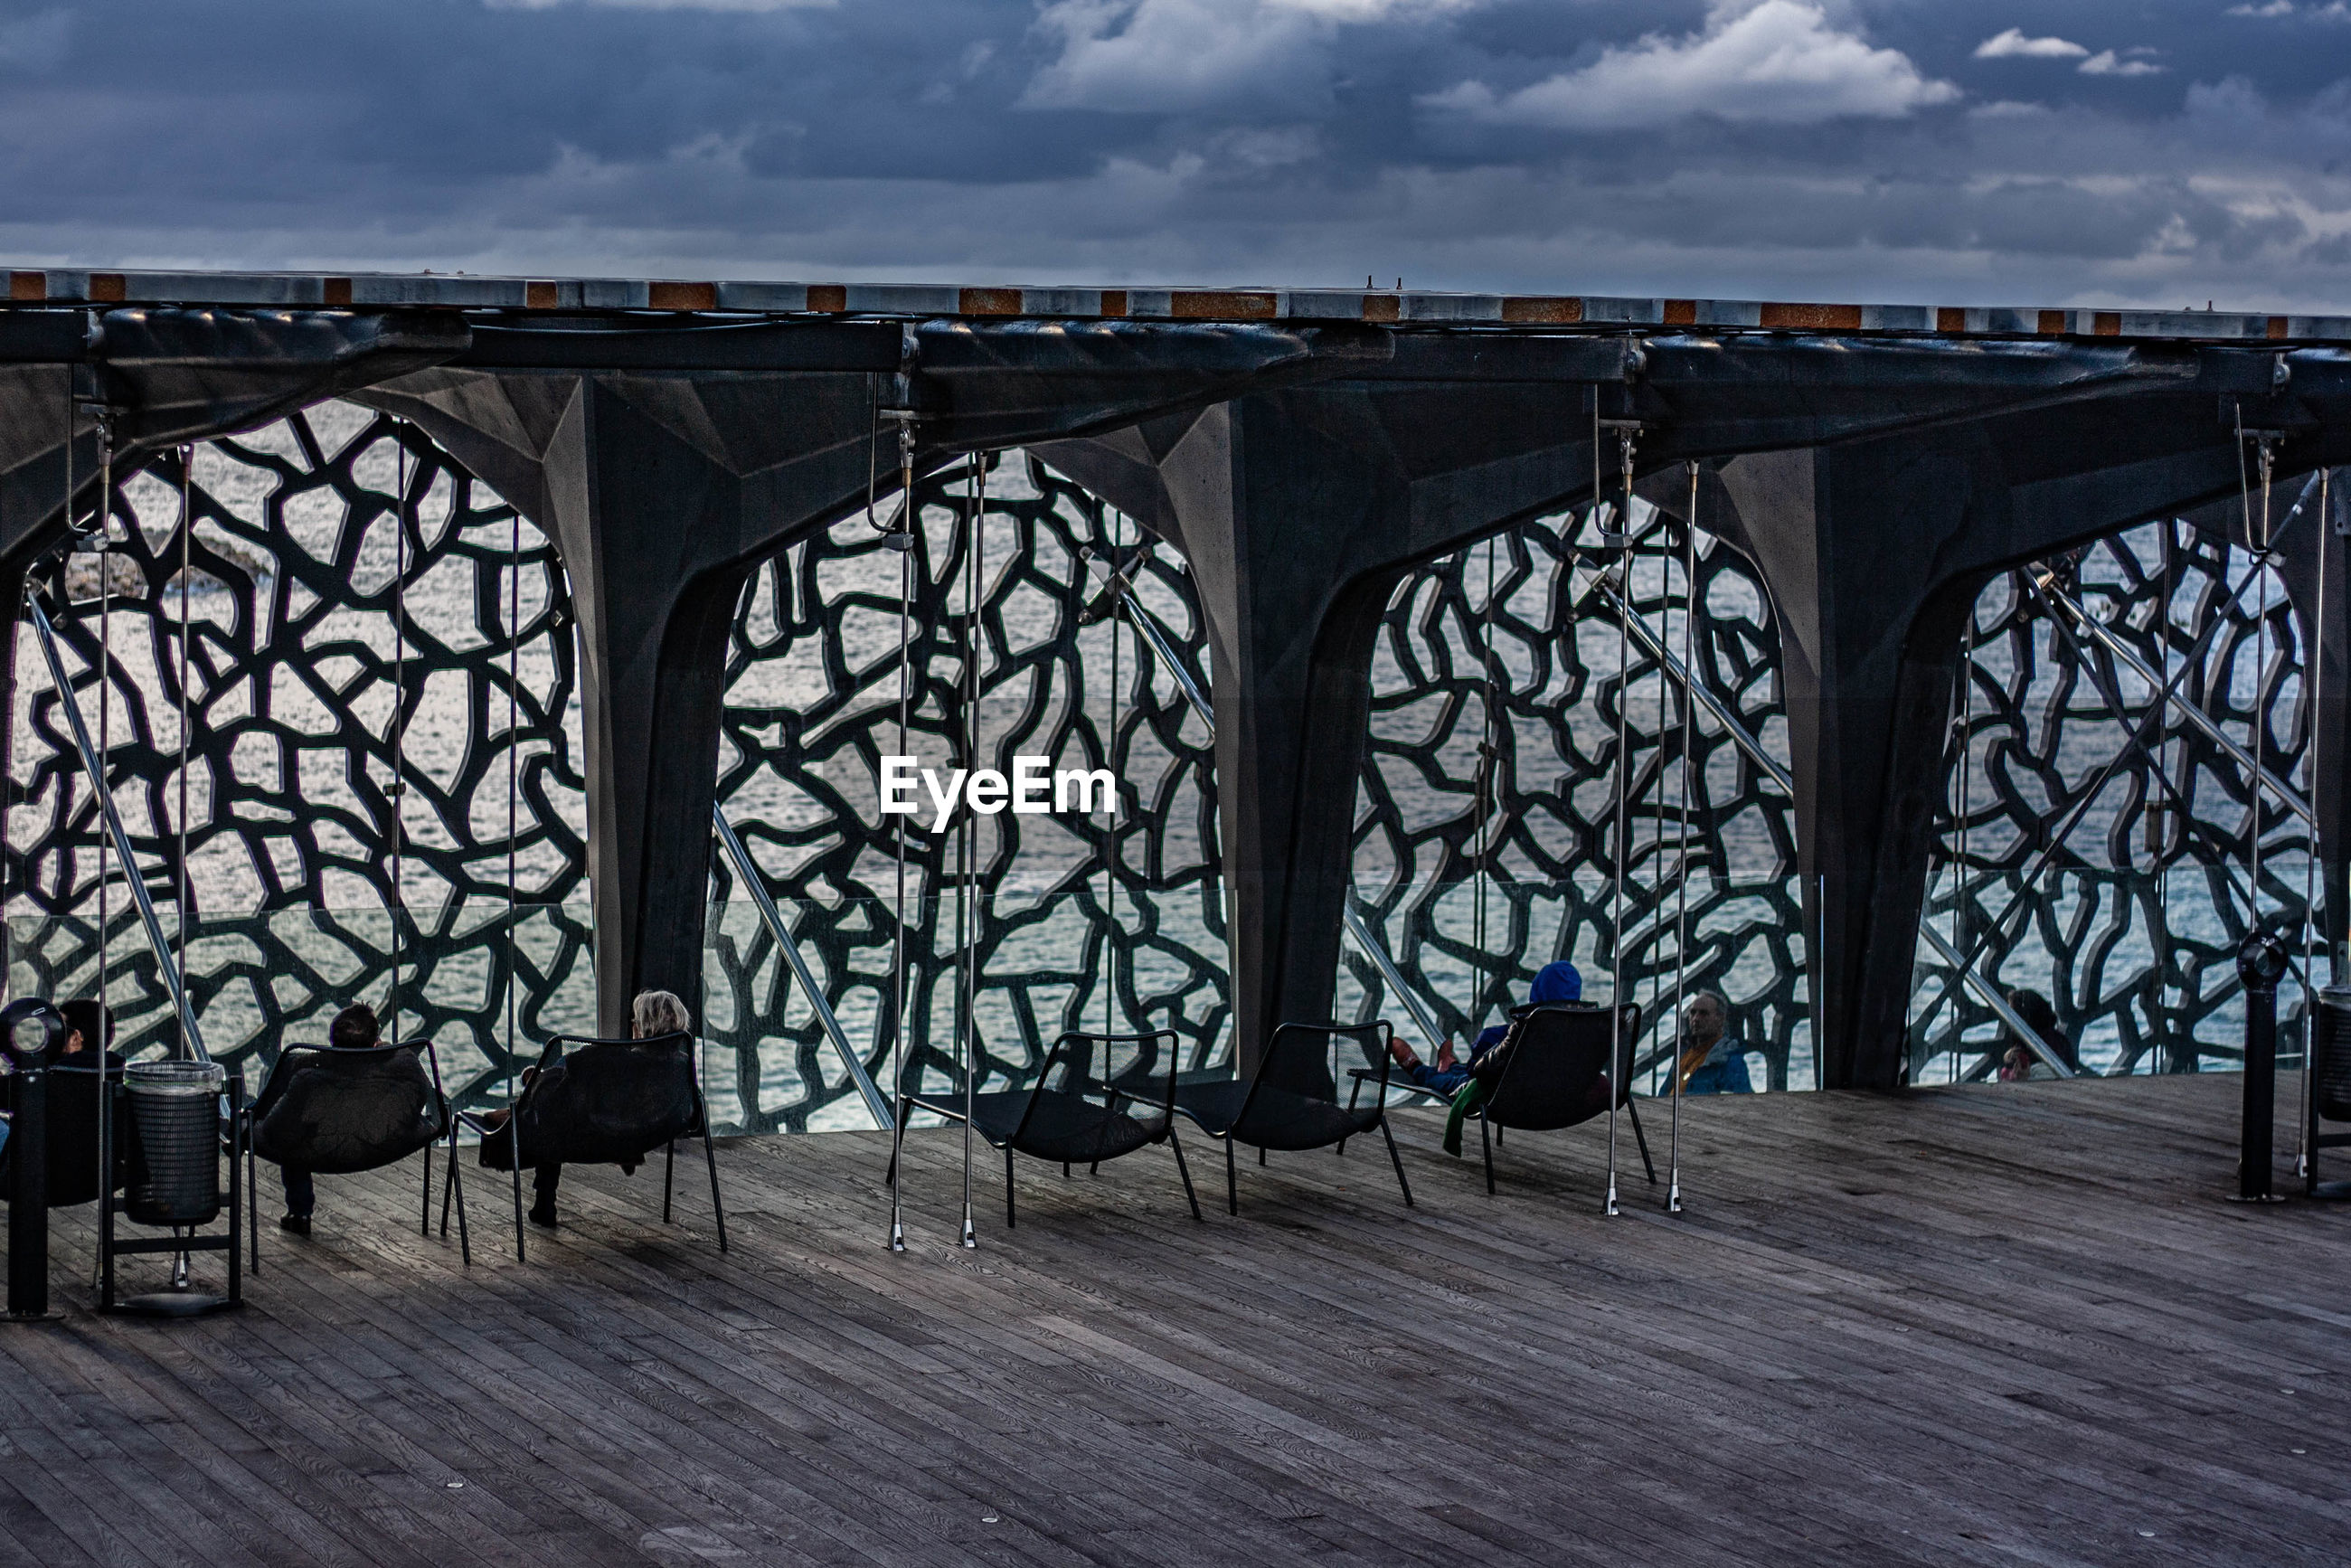 VIEW OF EMPTY CHAIRS AGAINST WALL IN PARK